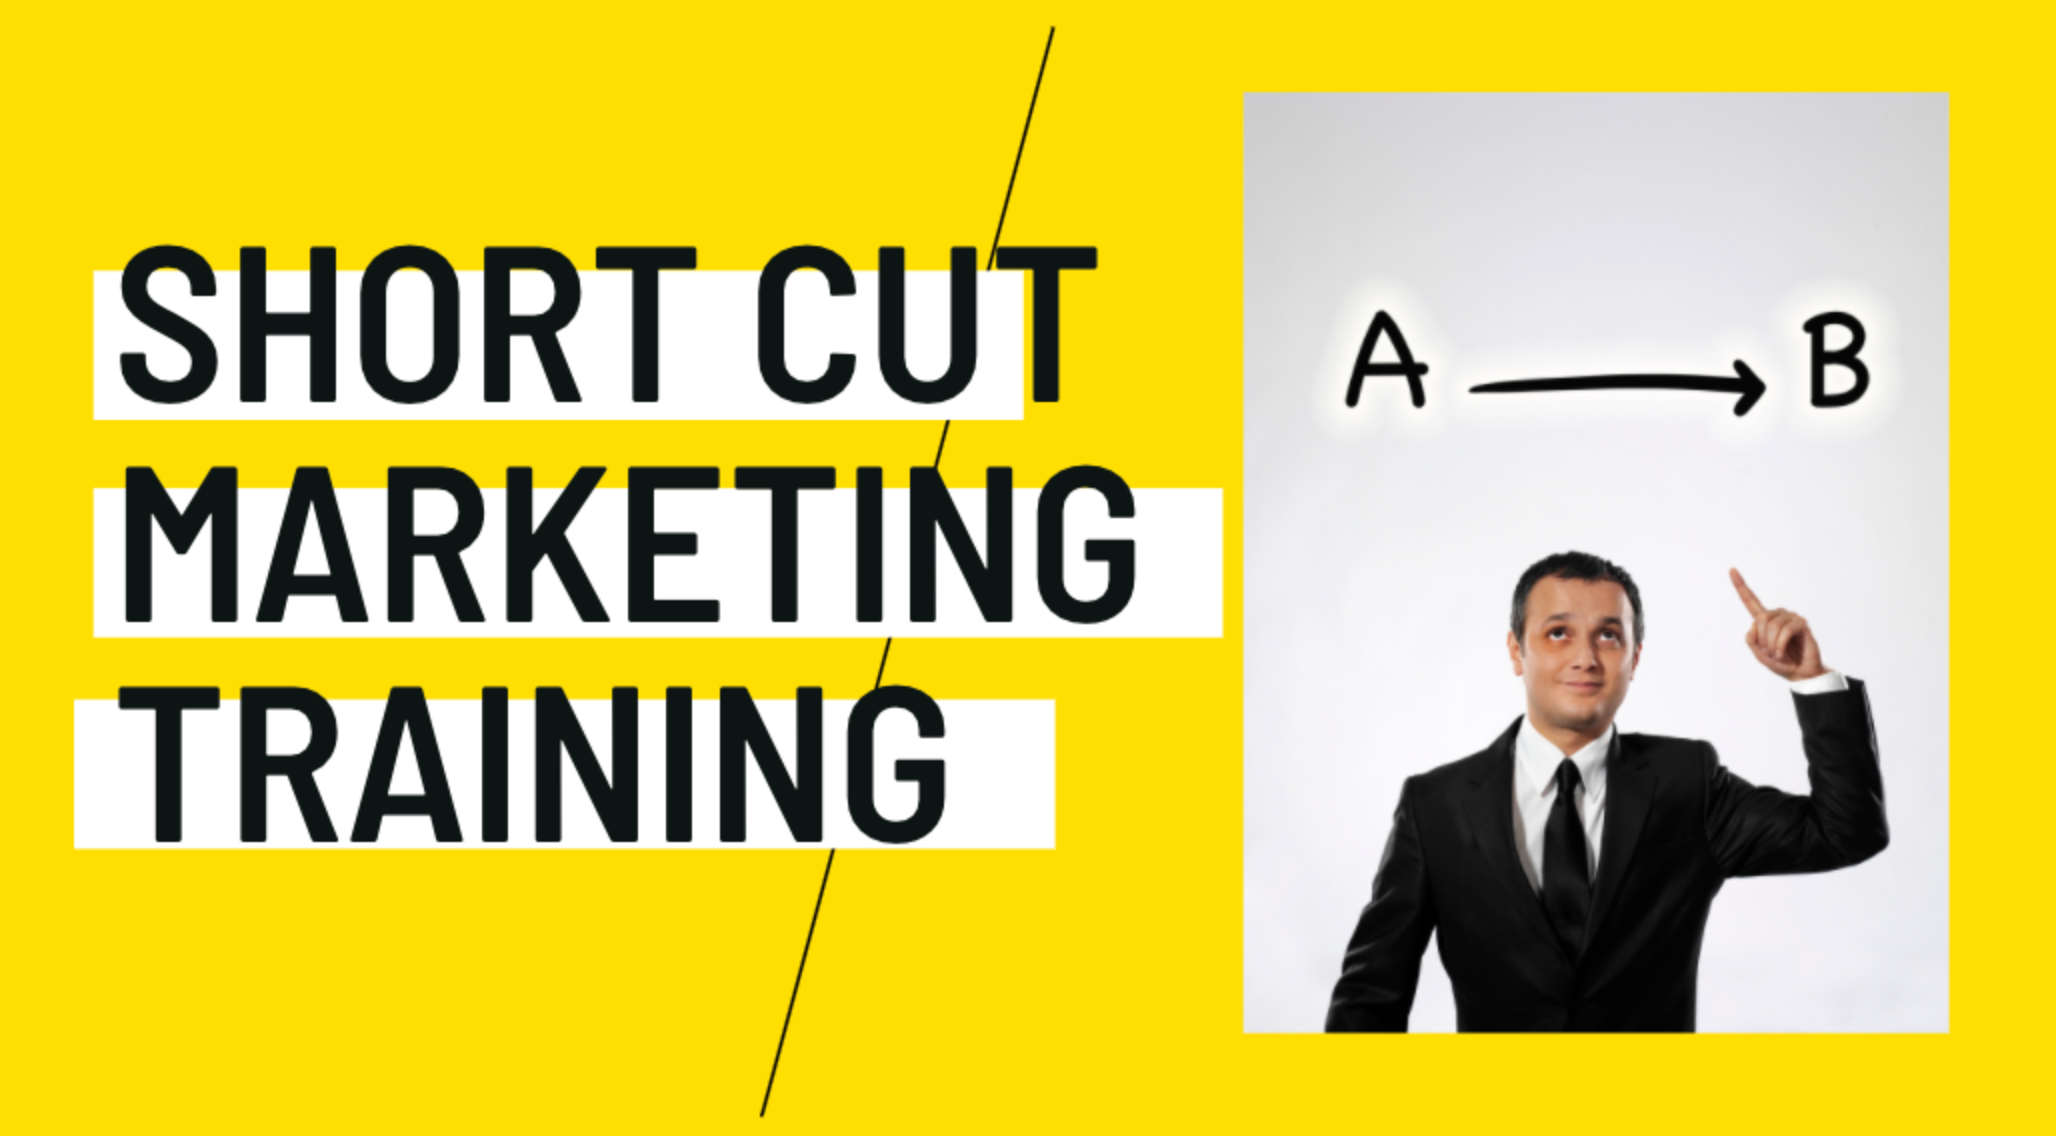 Short Cut Marketing